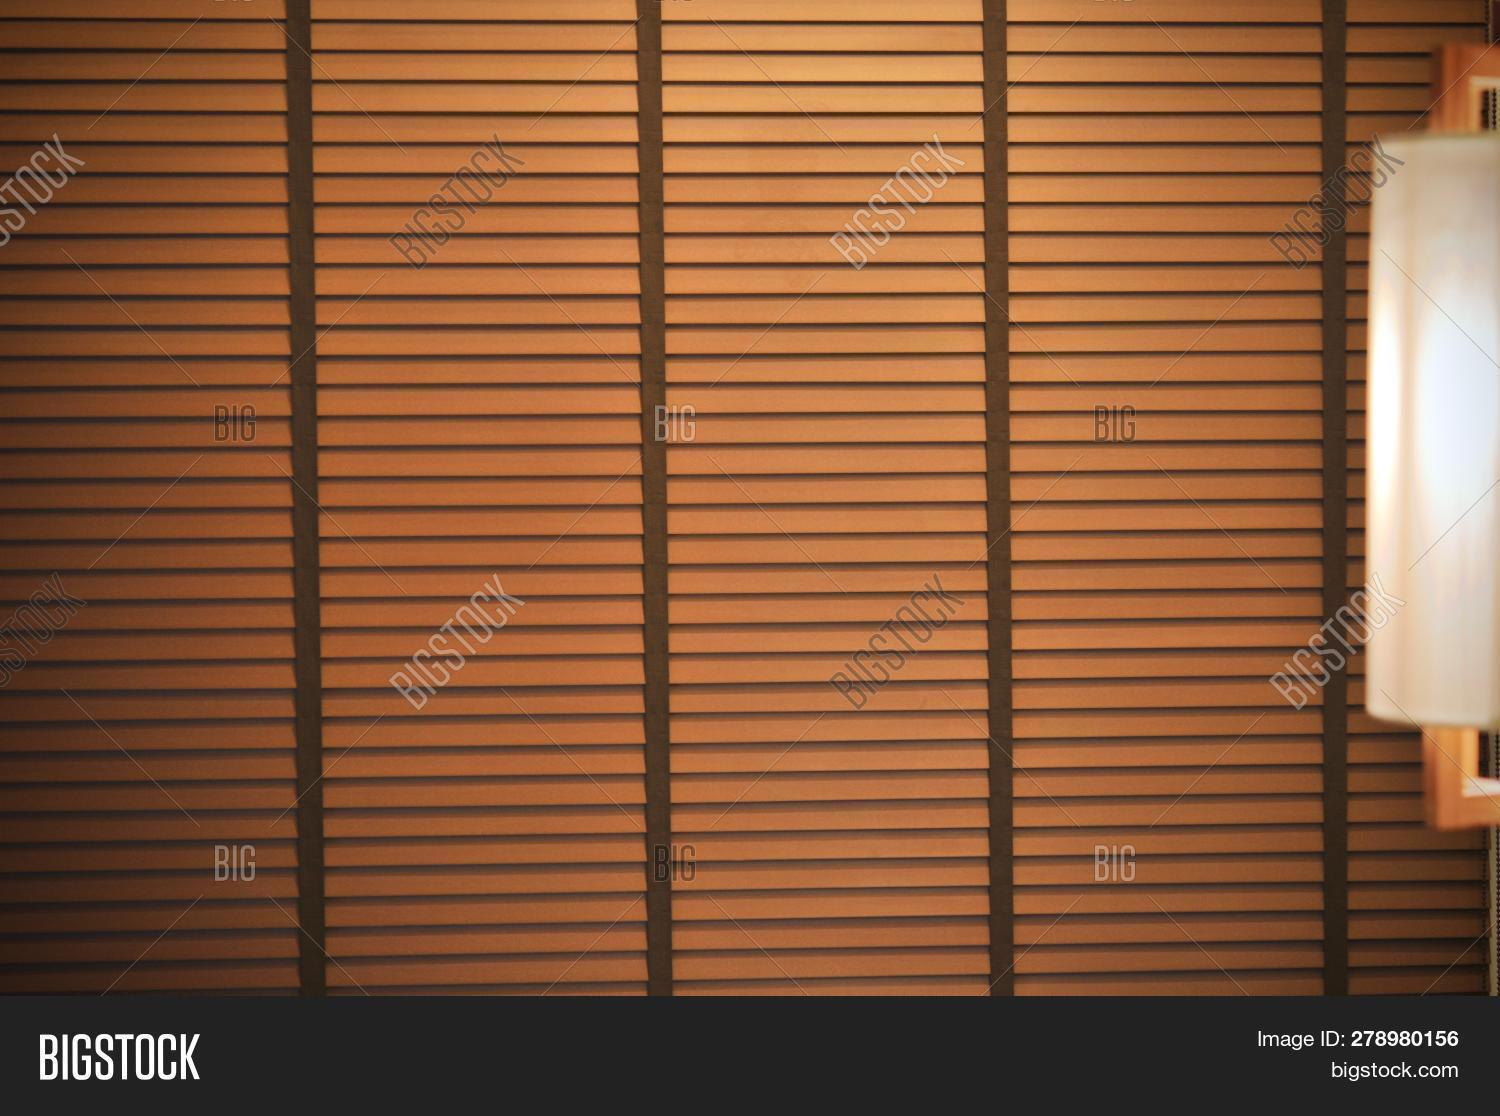 Blinds Home Catching Image Photo Free Trial Bigstock